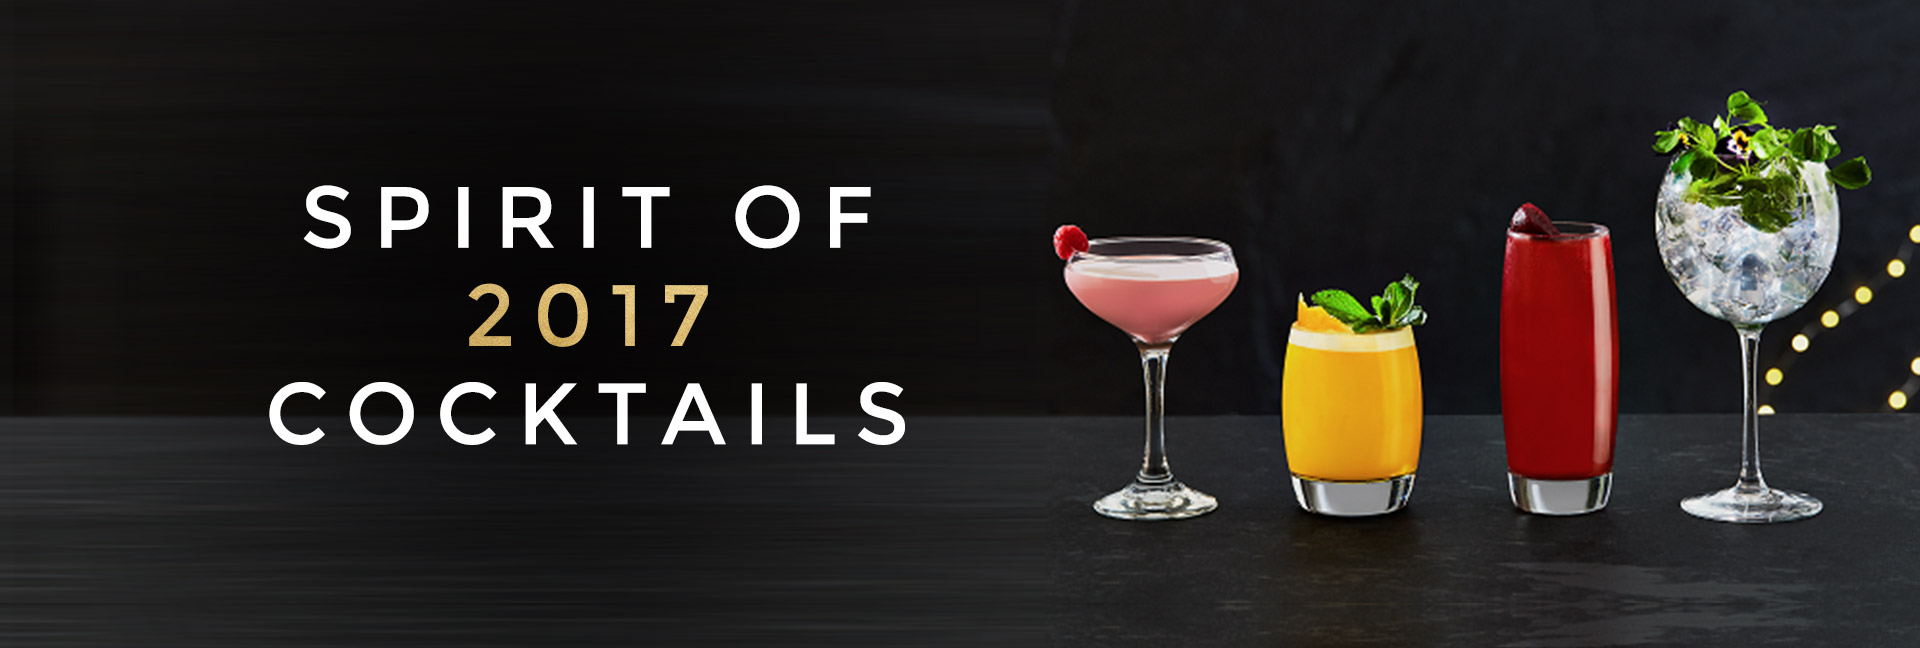 Spirit of 2017 cocktails at All Bar One Sheffield